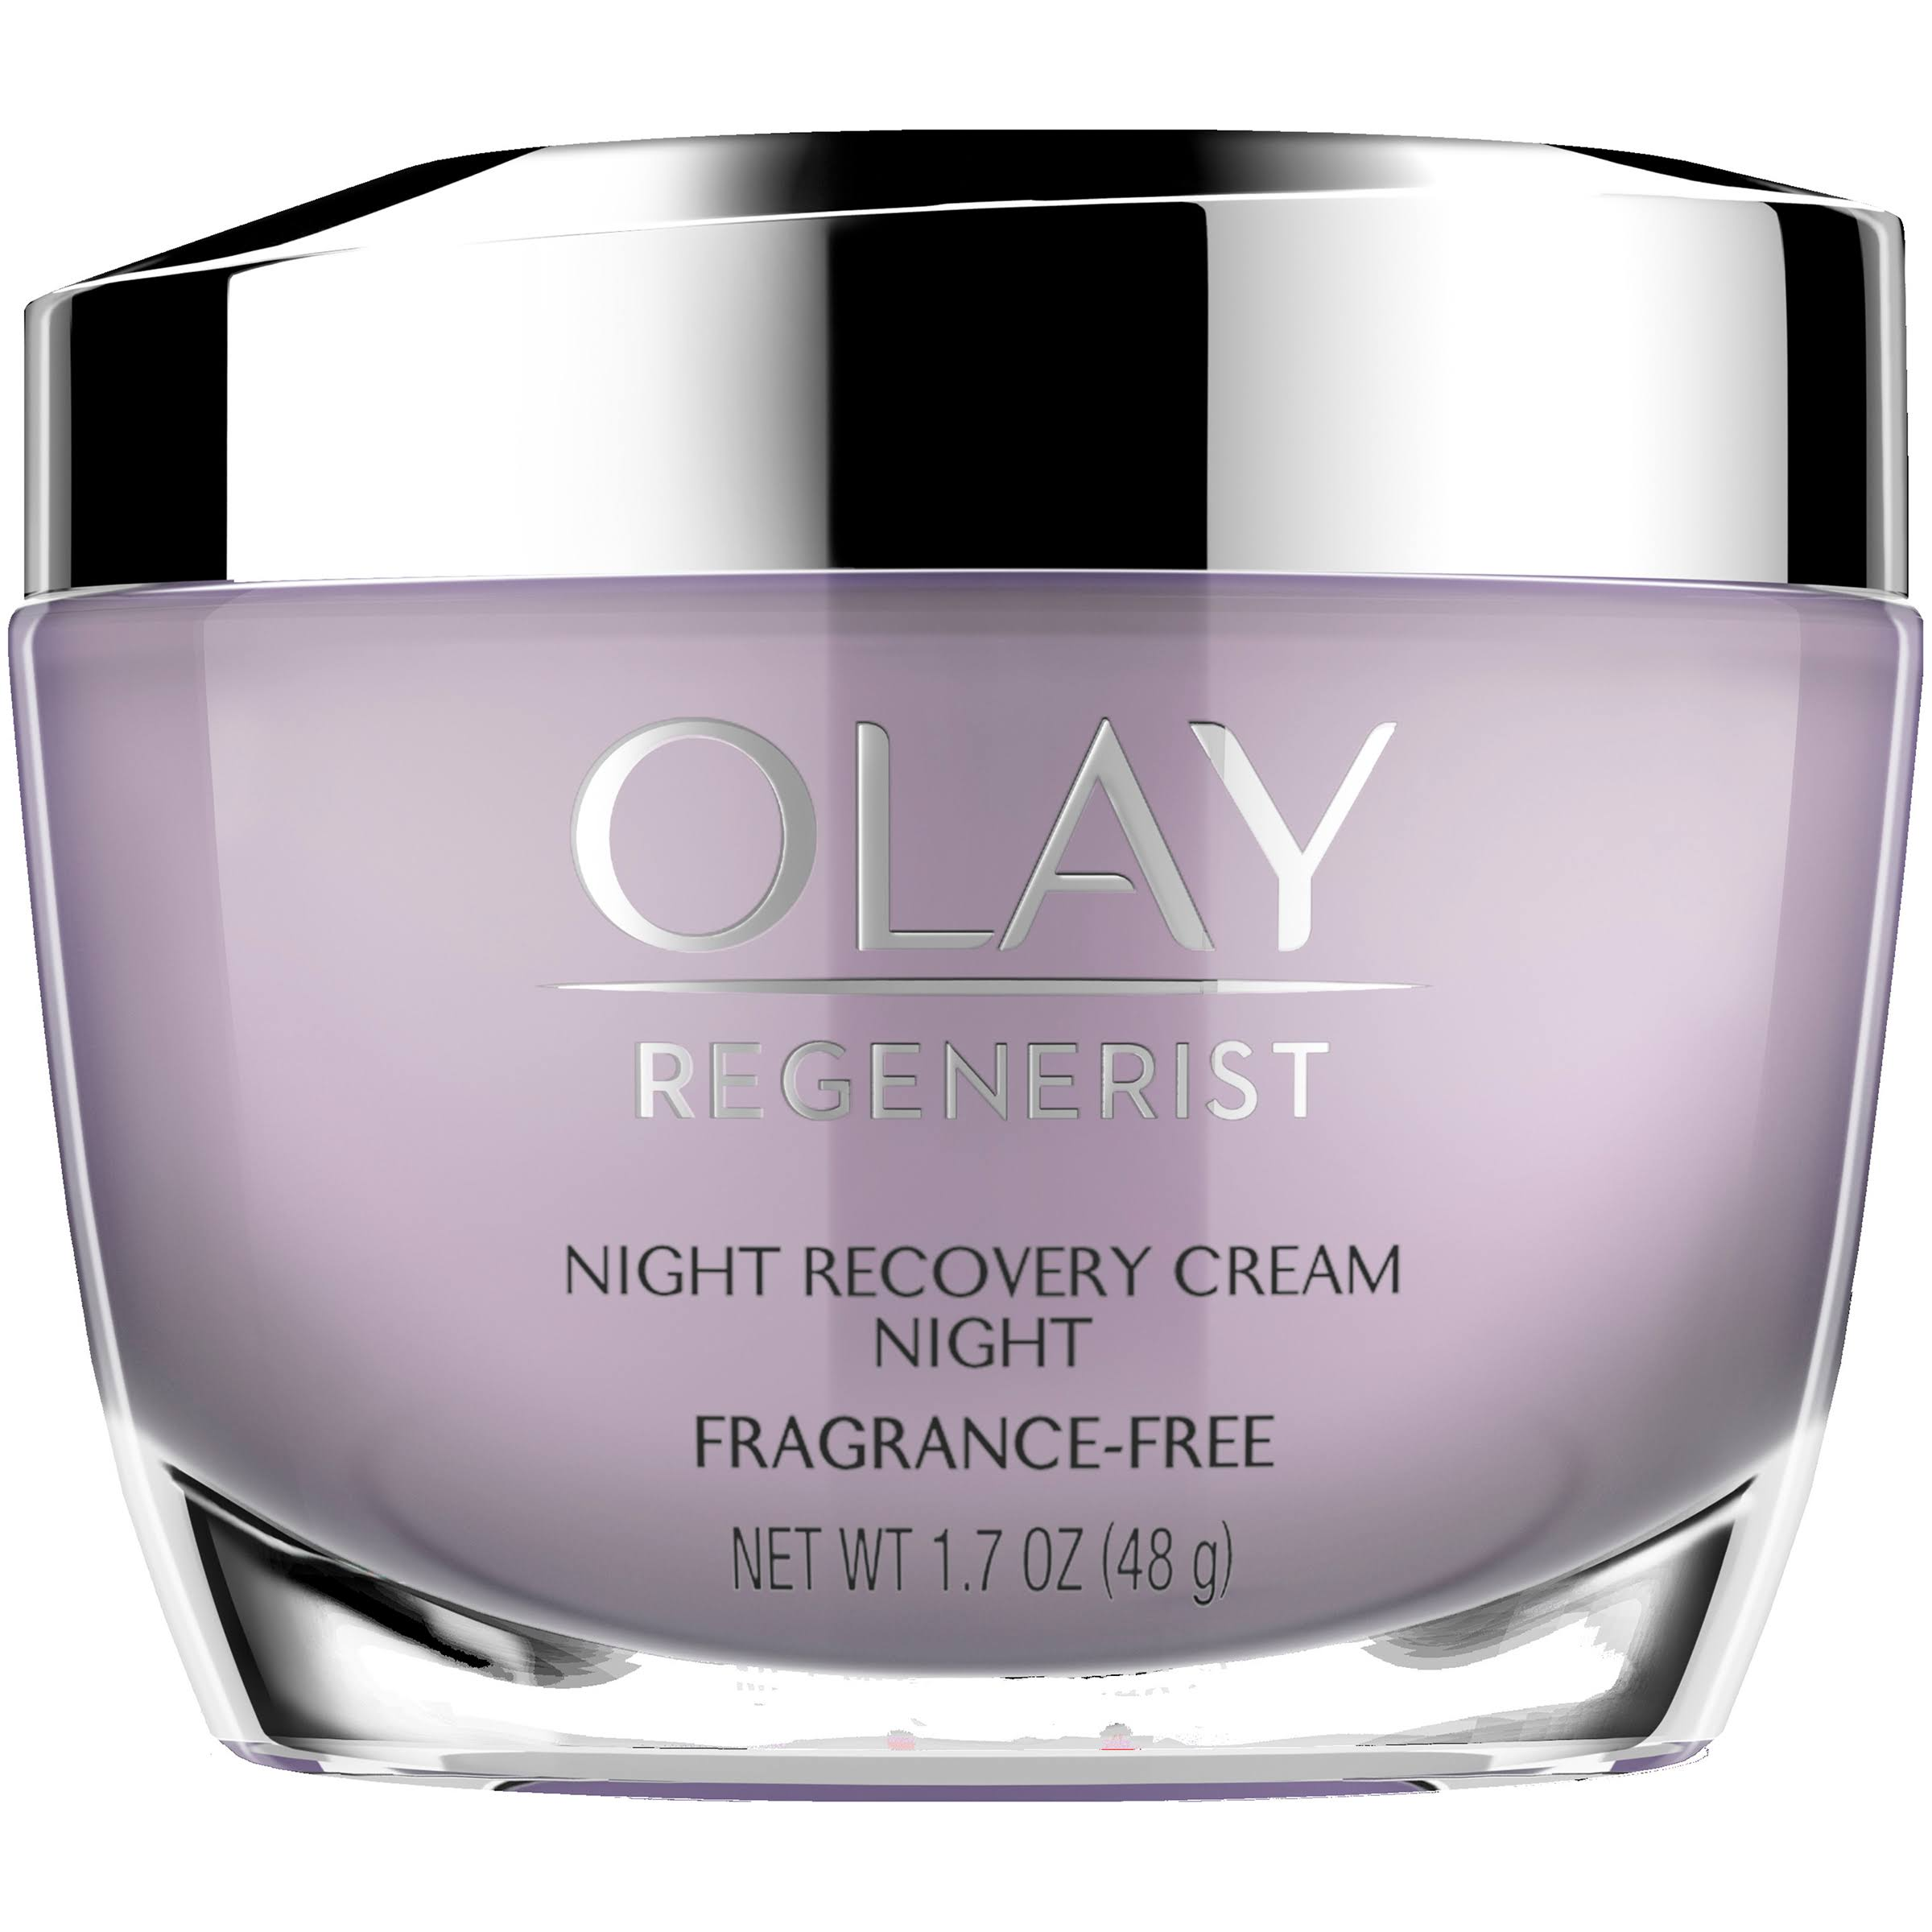 Olay Regenerist Advanced Anti-Aging Moisturize Night Recovery Cream - 48g